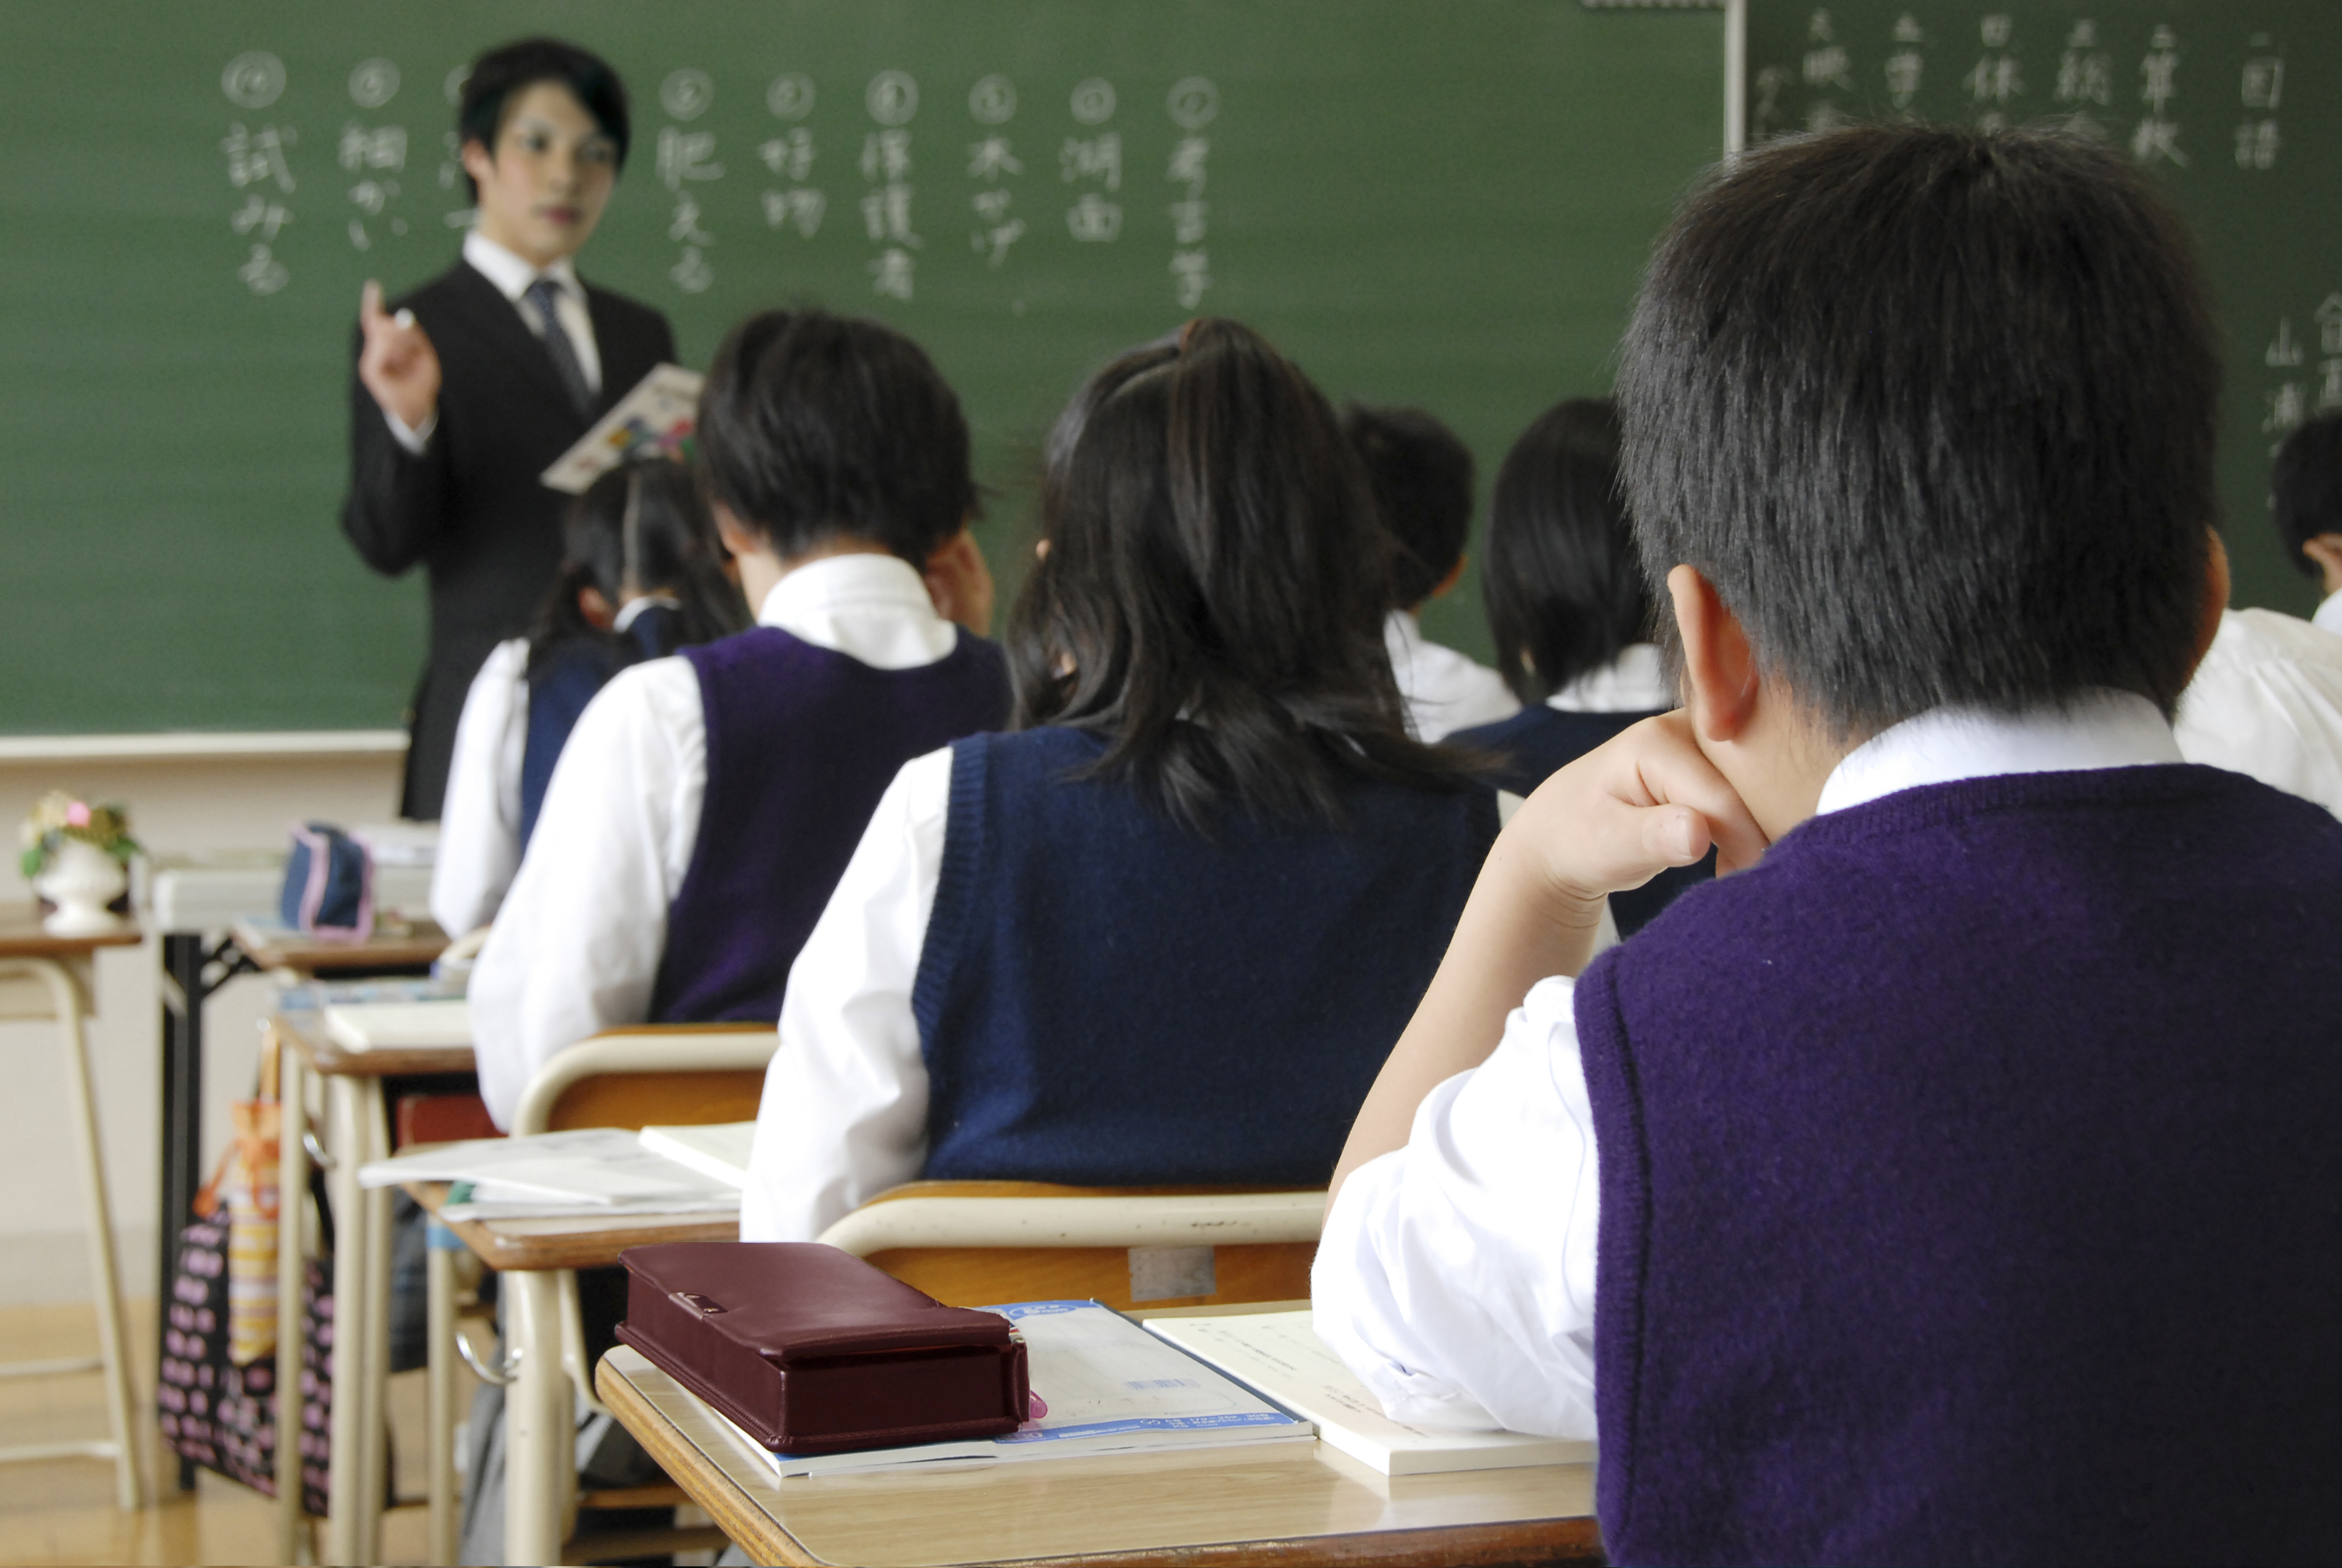 Child suicide in Japan: the leading cause of death in children